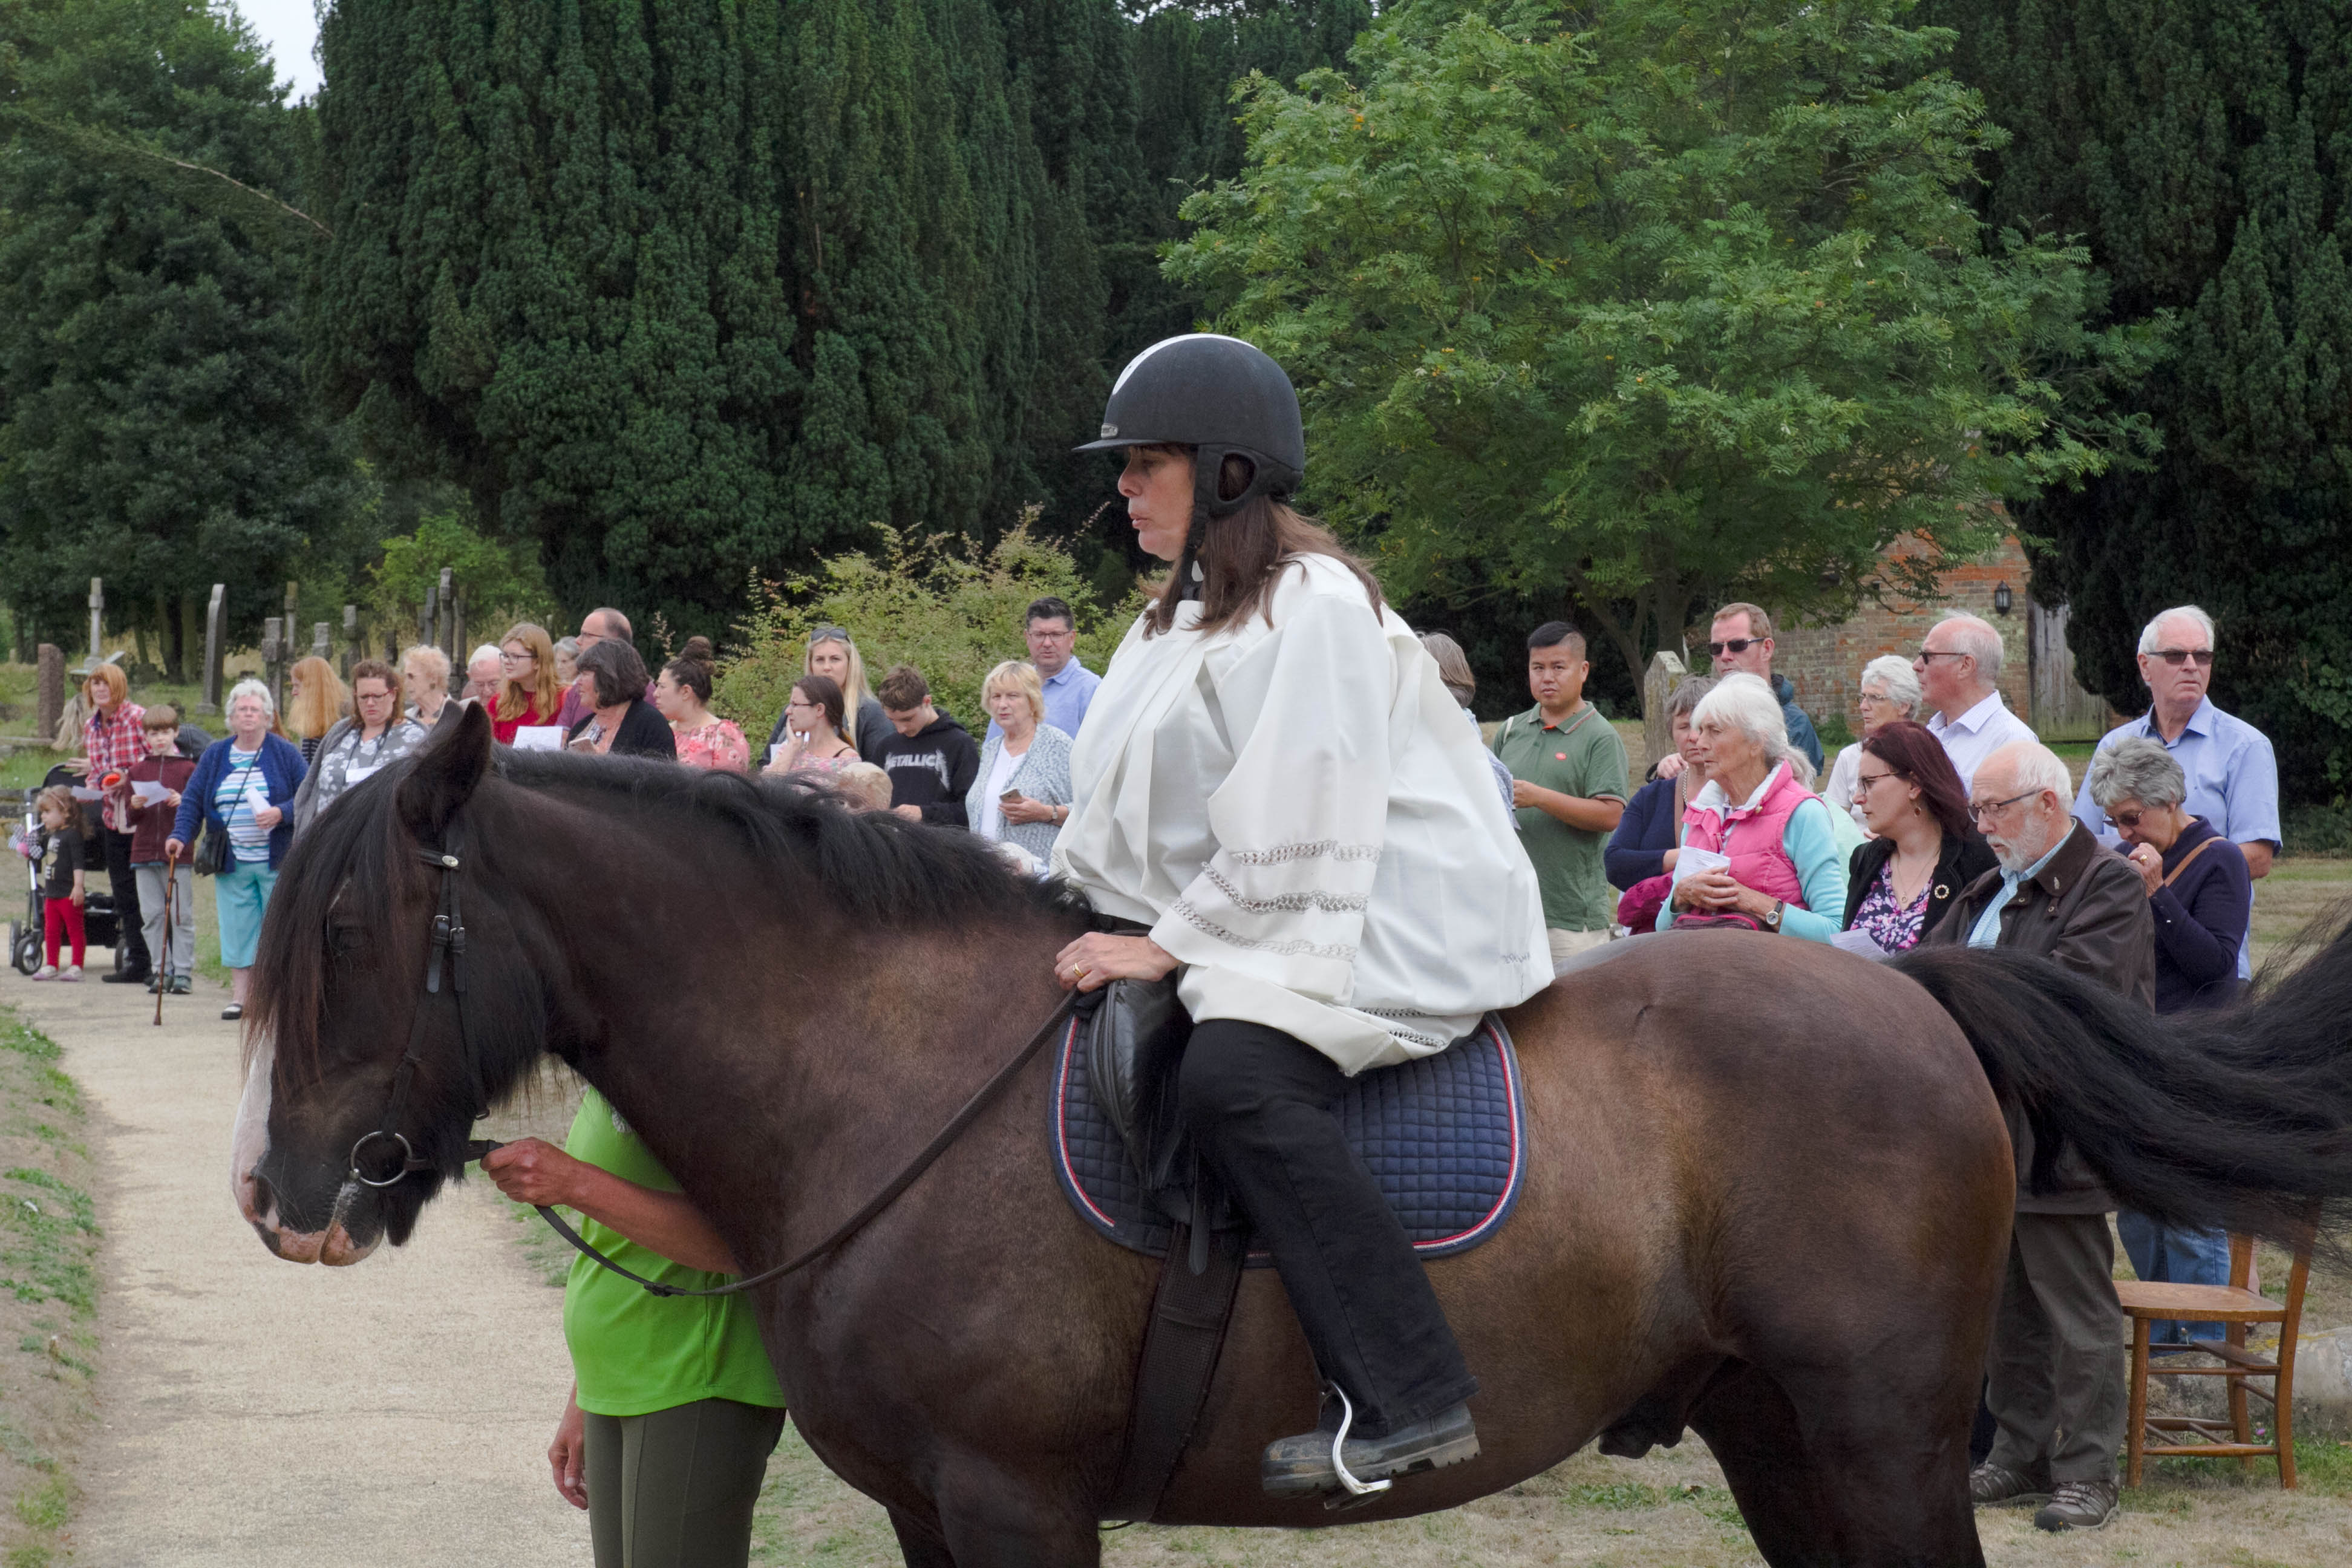 IMG 9821 Ginni on Horse Horse Blessing Service 12th August 2018-9821